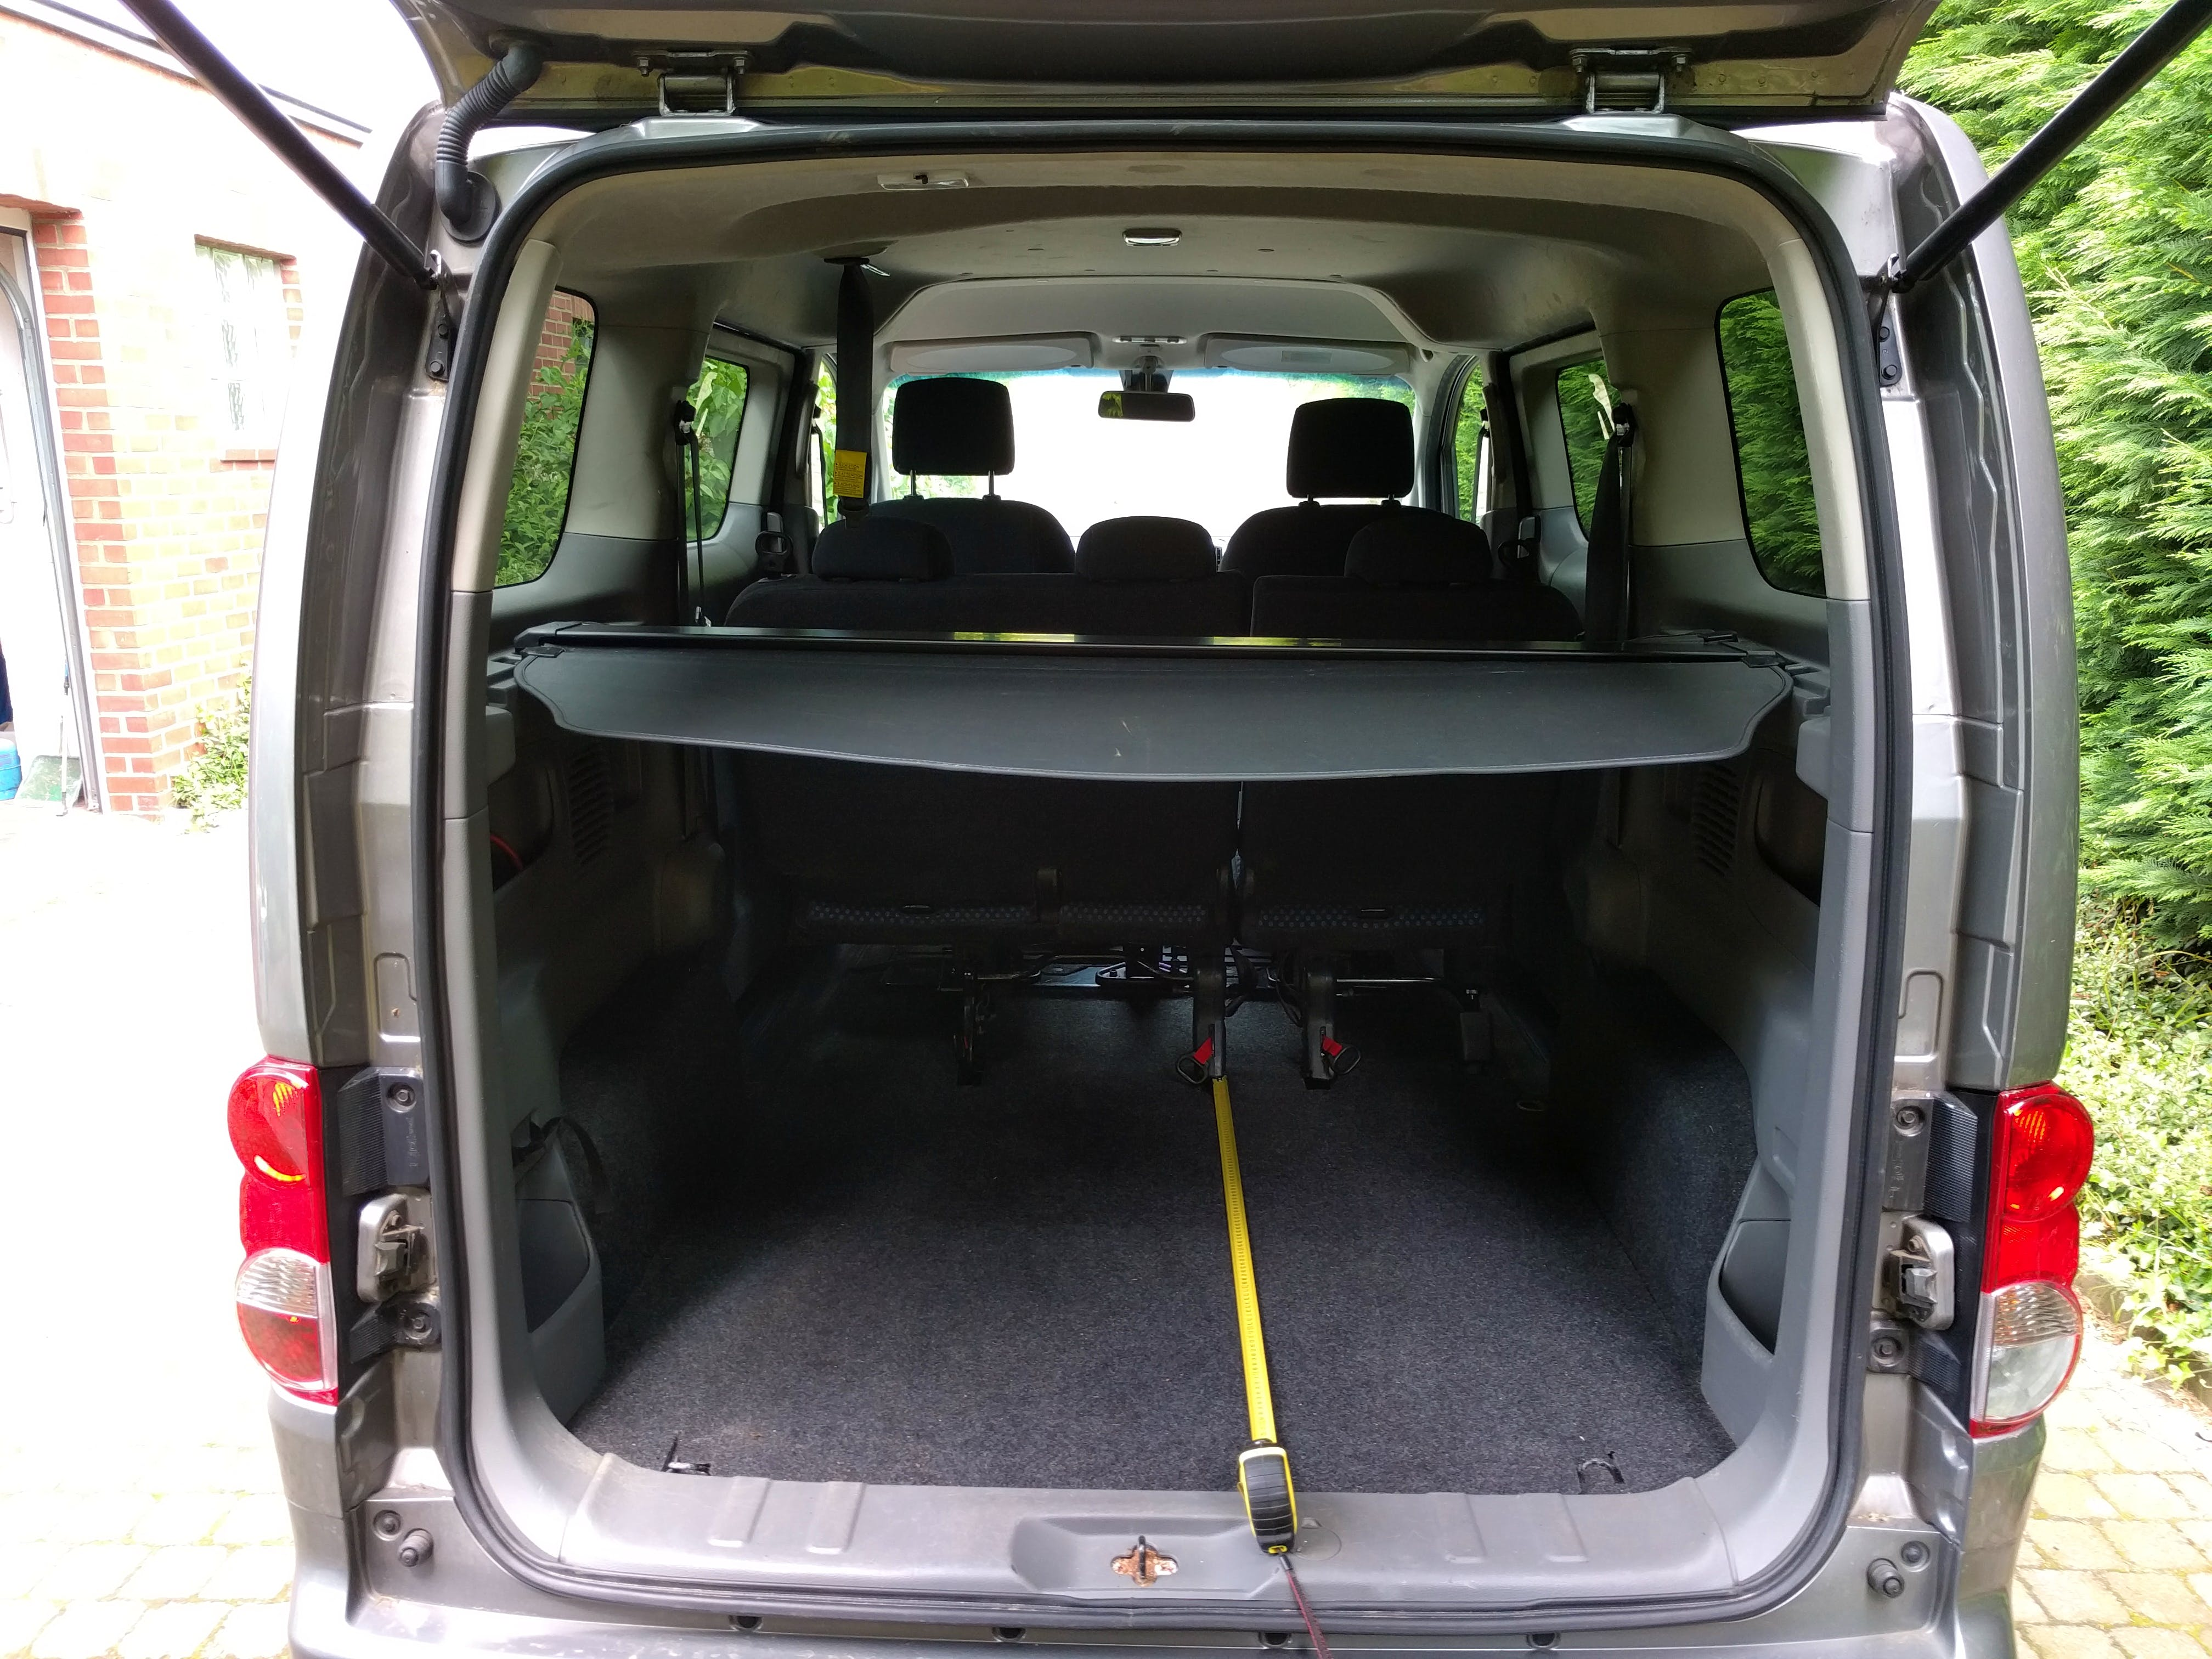 Nissan NV200 Combi - Luggage space will never be an issue.